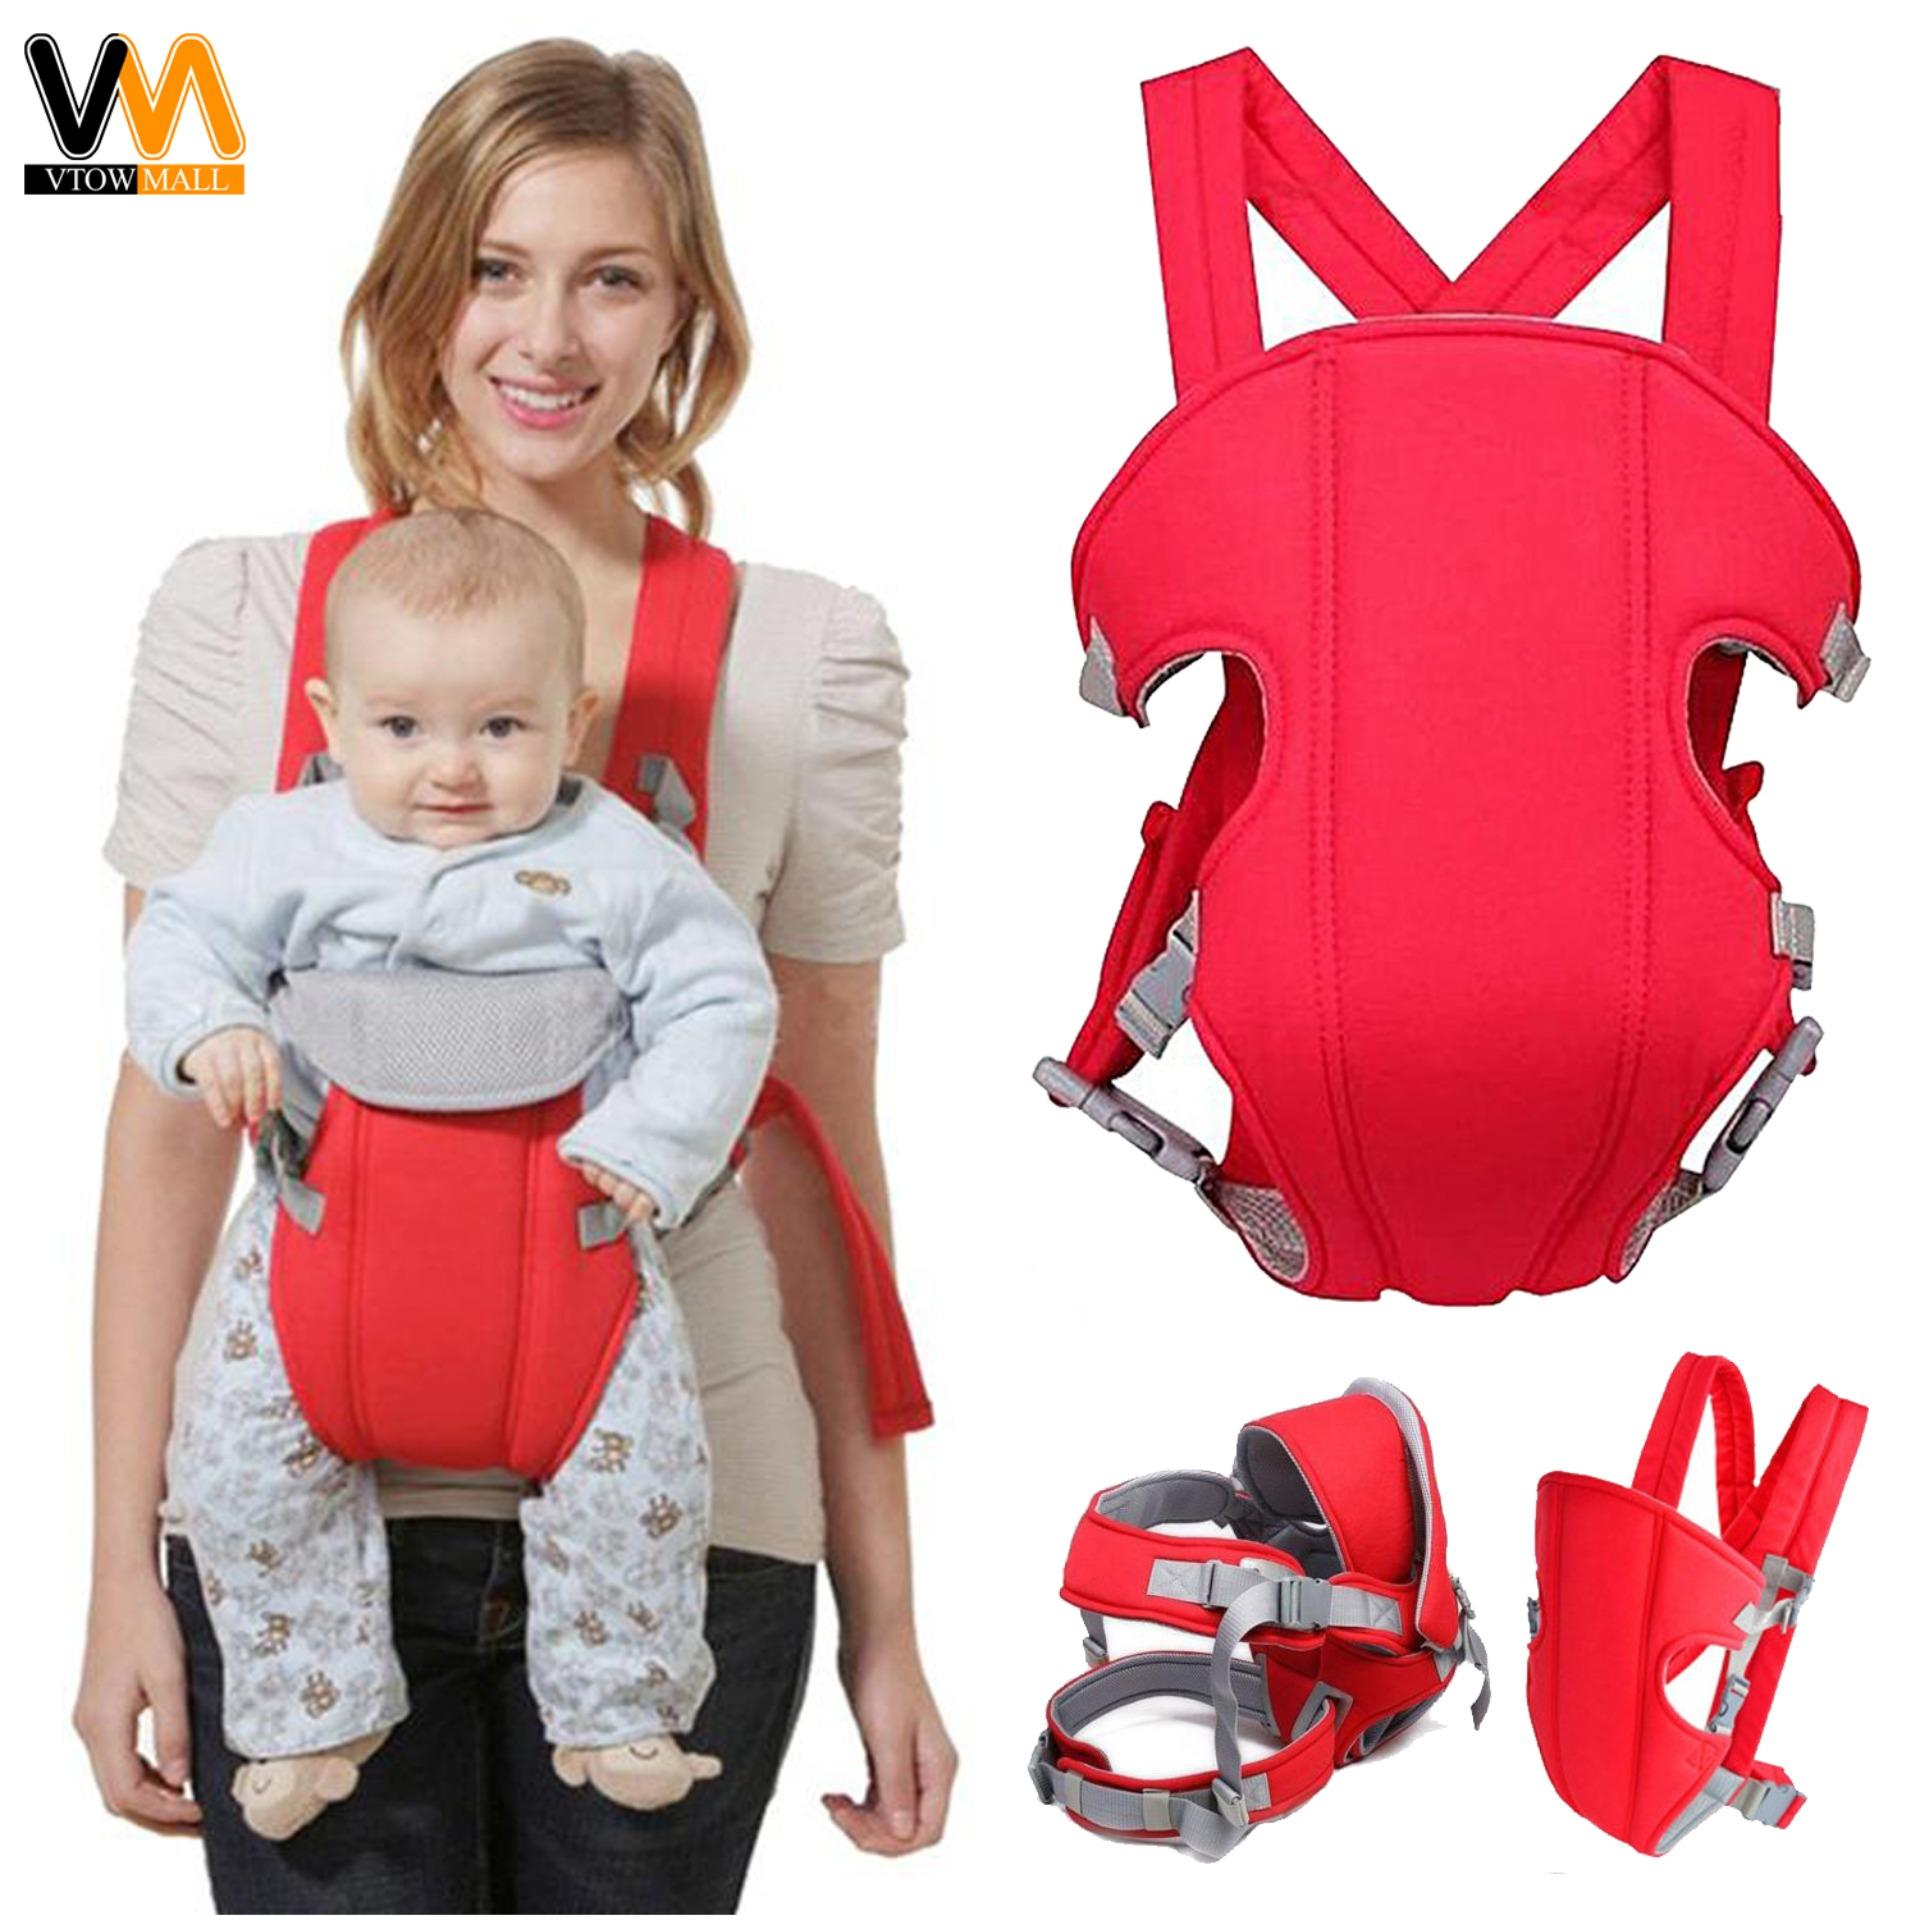 Adjustable Straps Baby Carrier (Red)